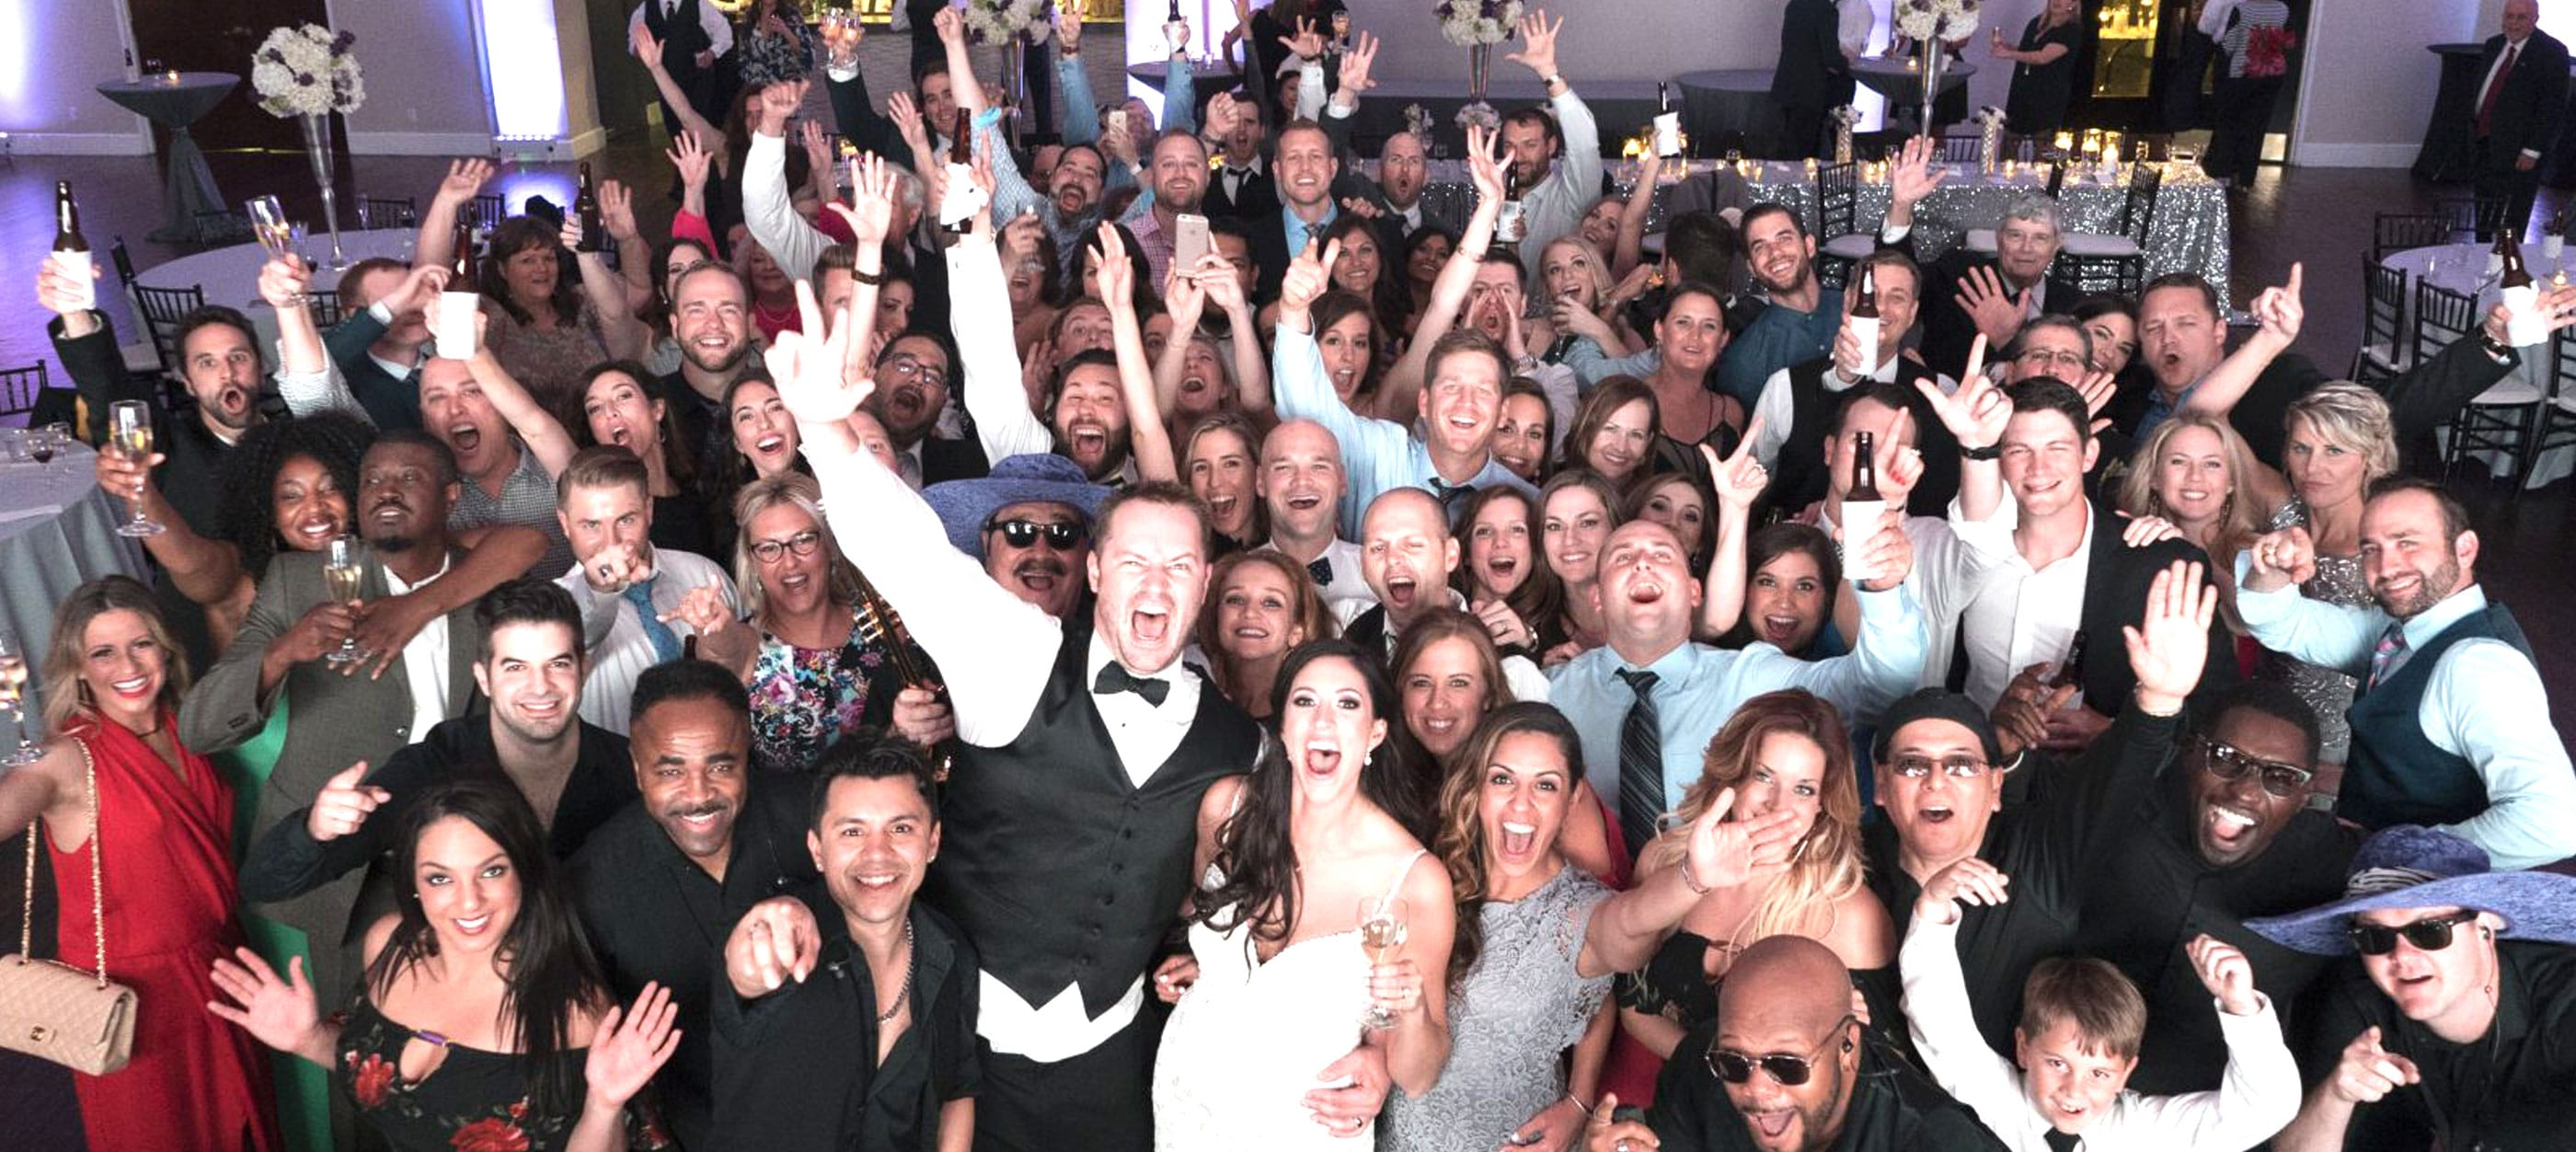 wedding slider happy crowd